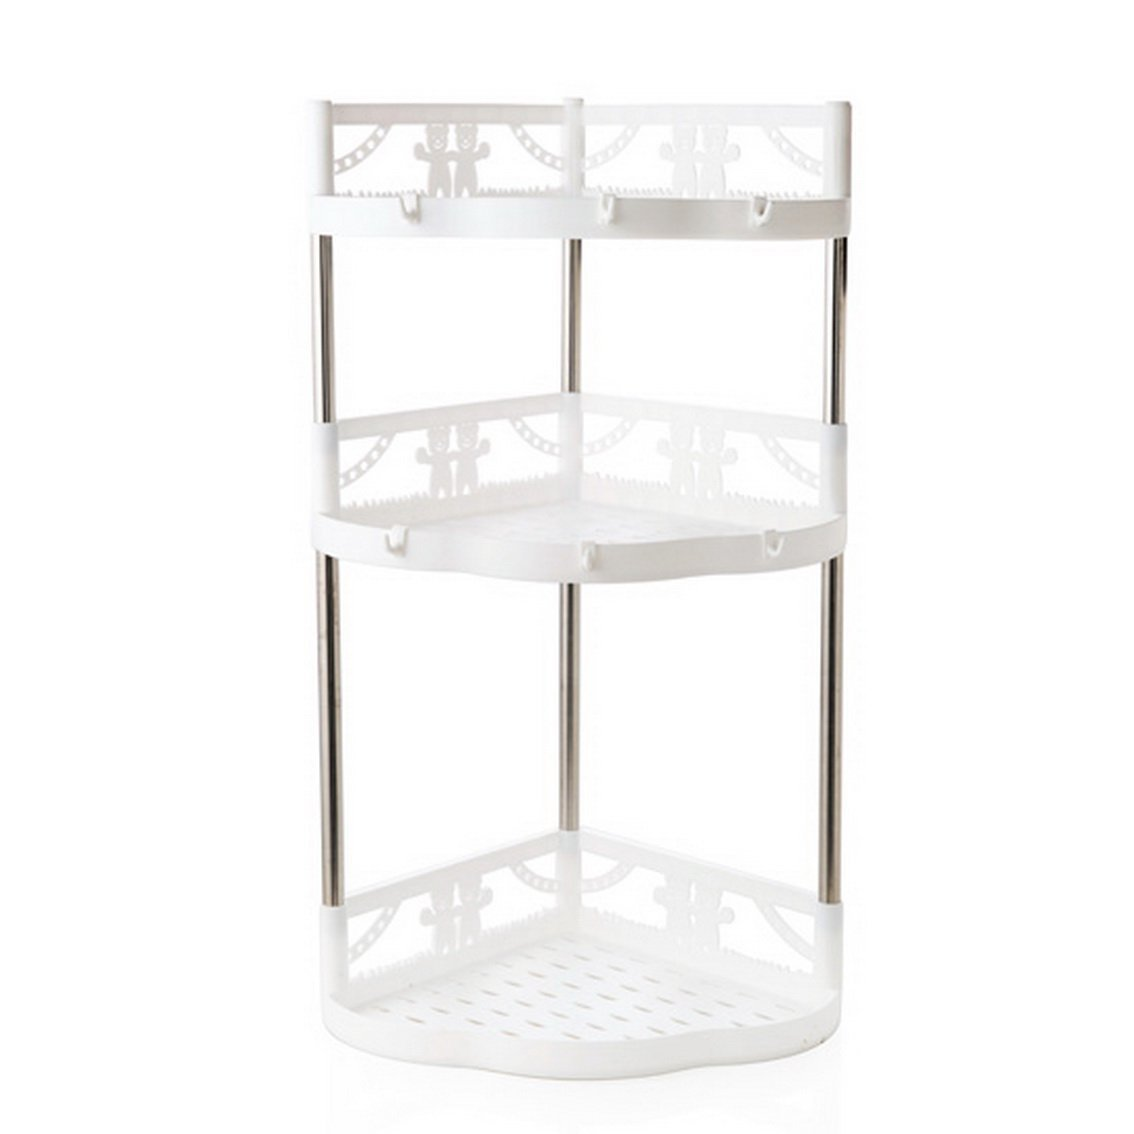 fengg2030shann Multi-layer stainless steel glove racks floor storage racks storage racks kitchen spices finishing frame spices rack Storage rack storage rack tune Materials shelving storage rack st